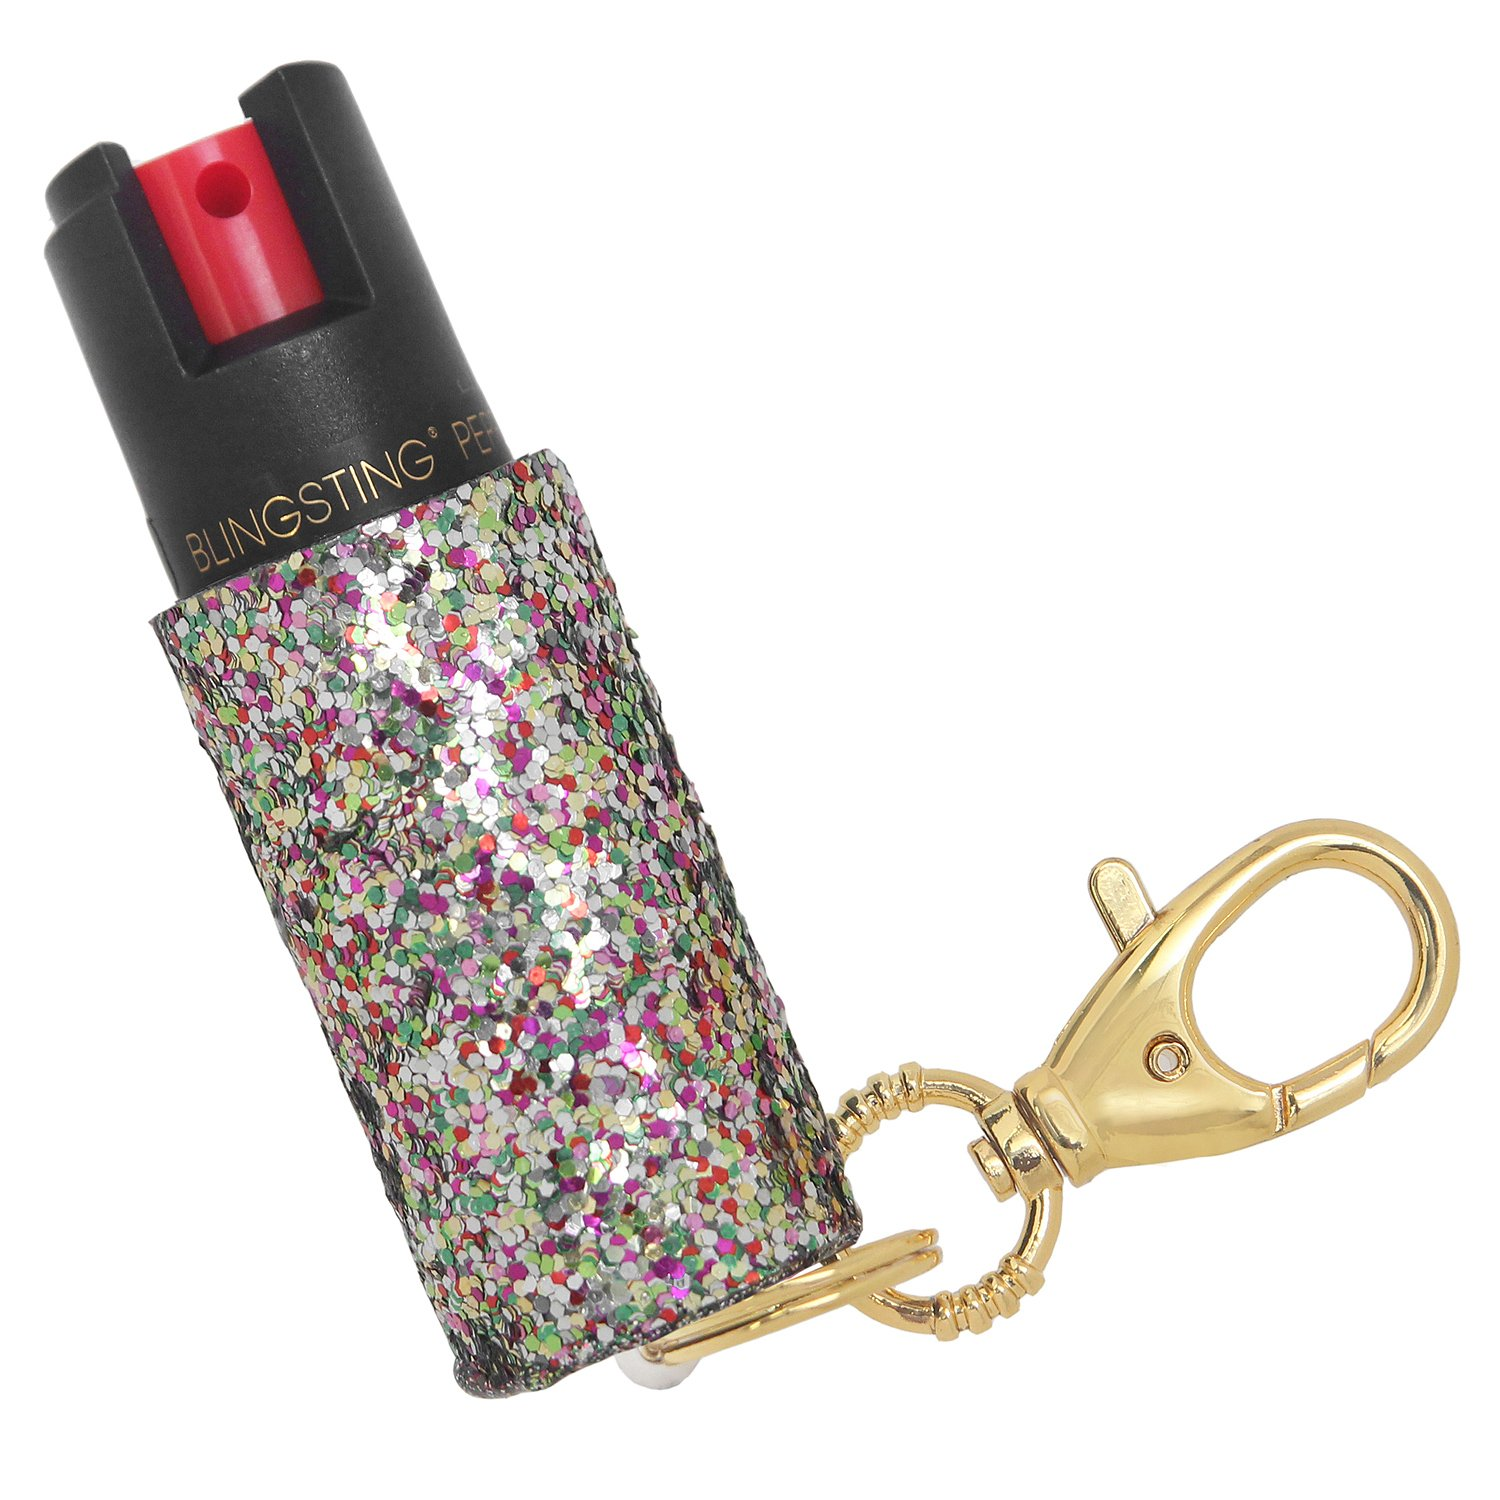 Super-Cute Pepper Spray Purse Charm, Multi-Color Glitter with Gold Keychain, 10% Maximum Strength OC Formula for Self-Defense and Personal Safety